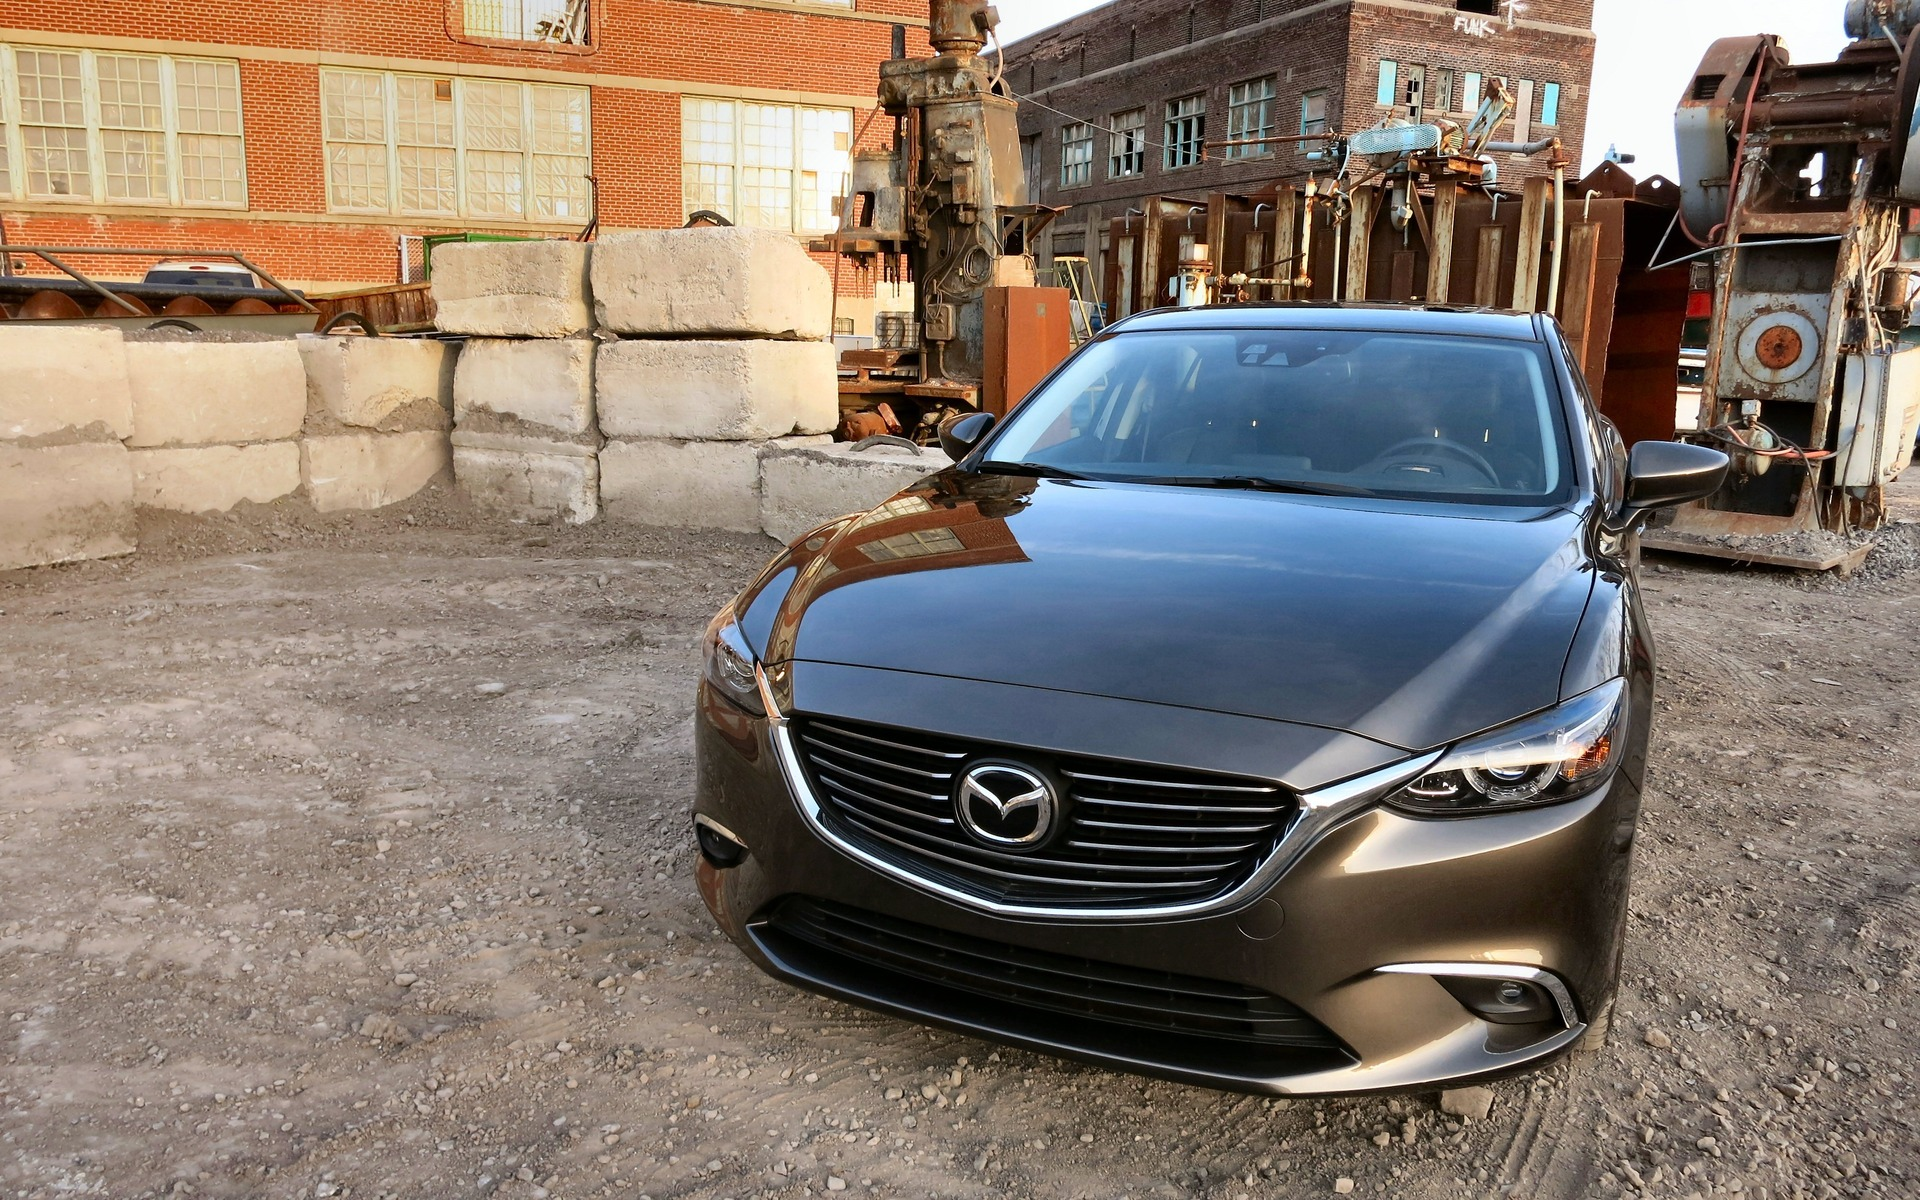 2016 Mazda6: Love The Drive, Sweating The (High Tech) Details